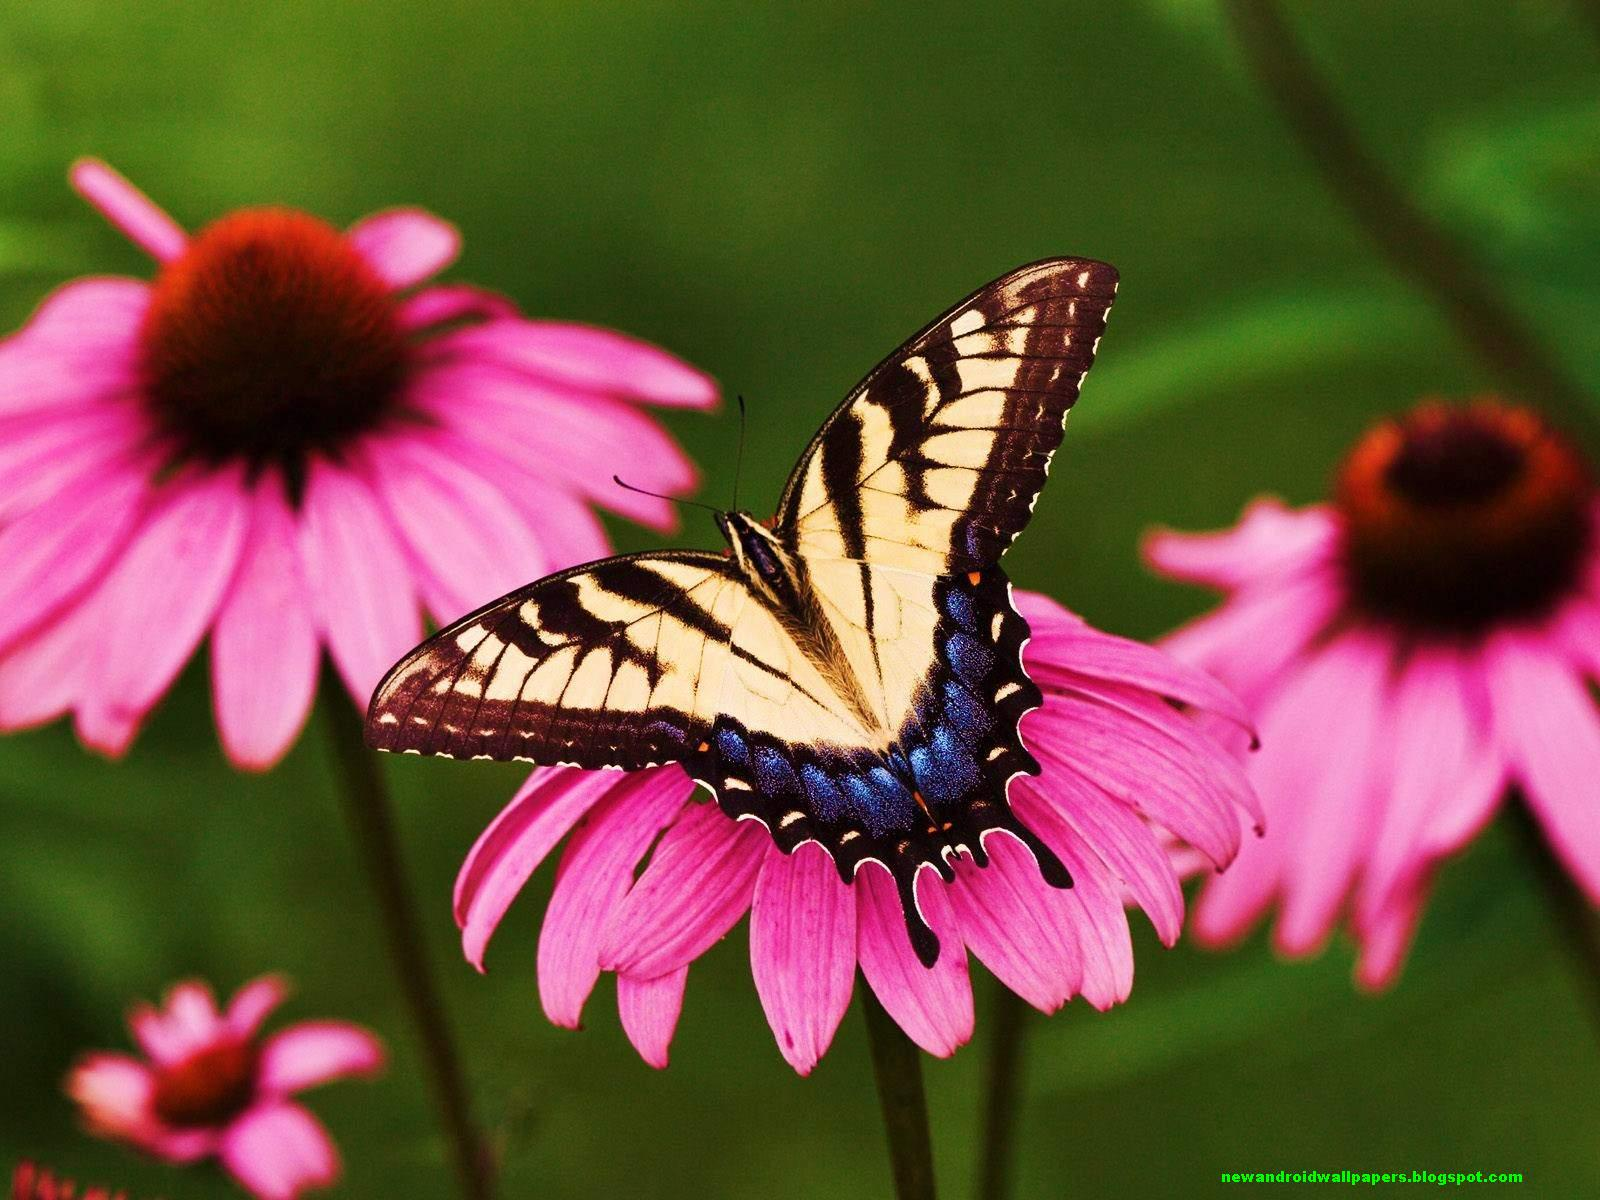 beautiful hd butterfly on flower wallpapers for desktop 2013 for android